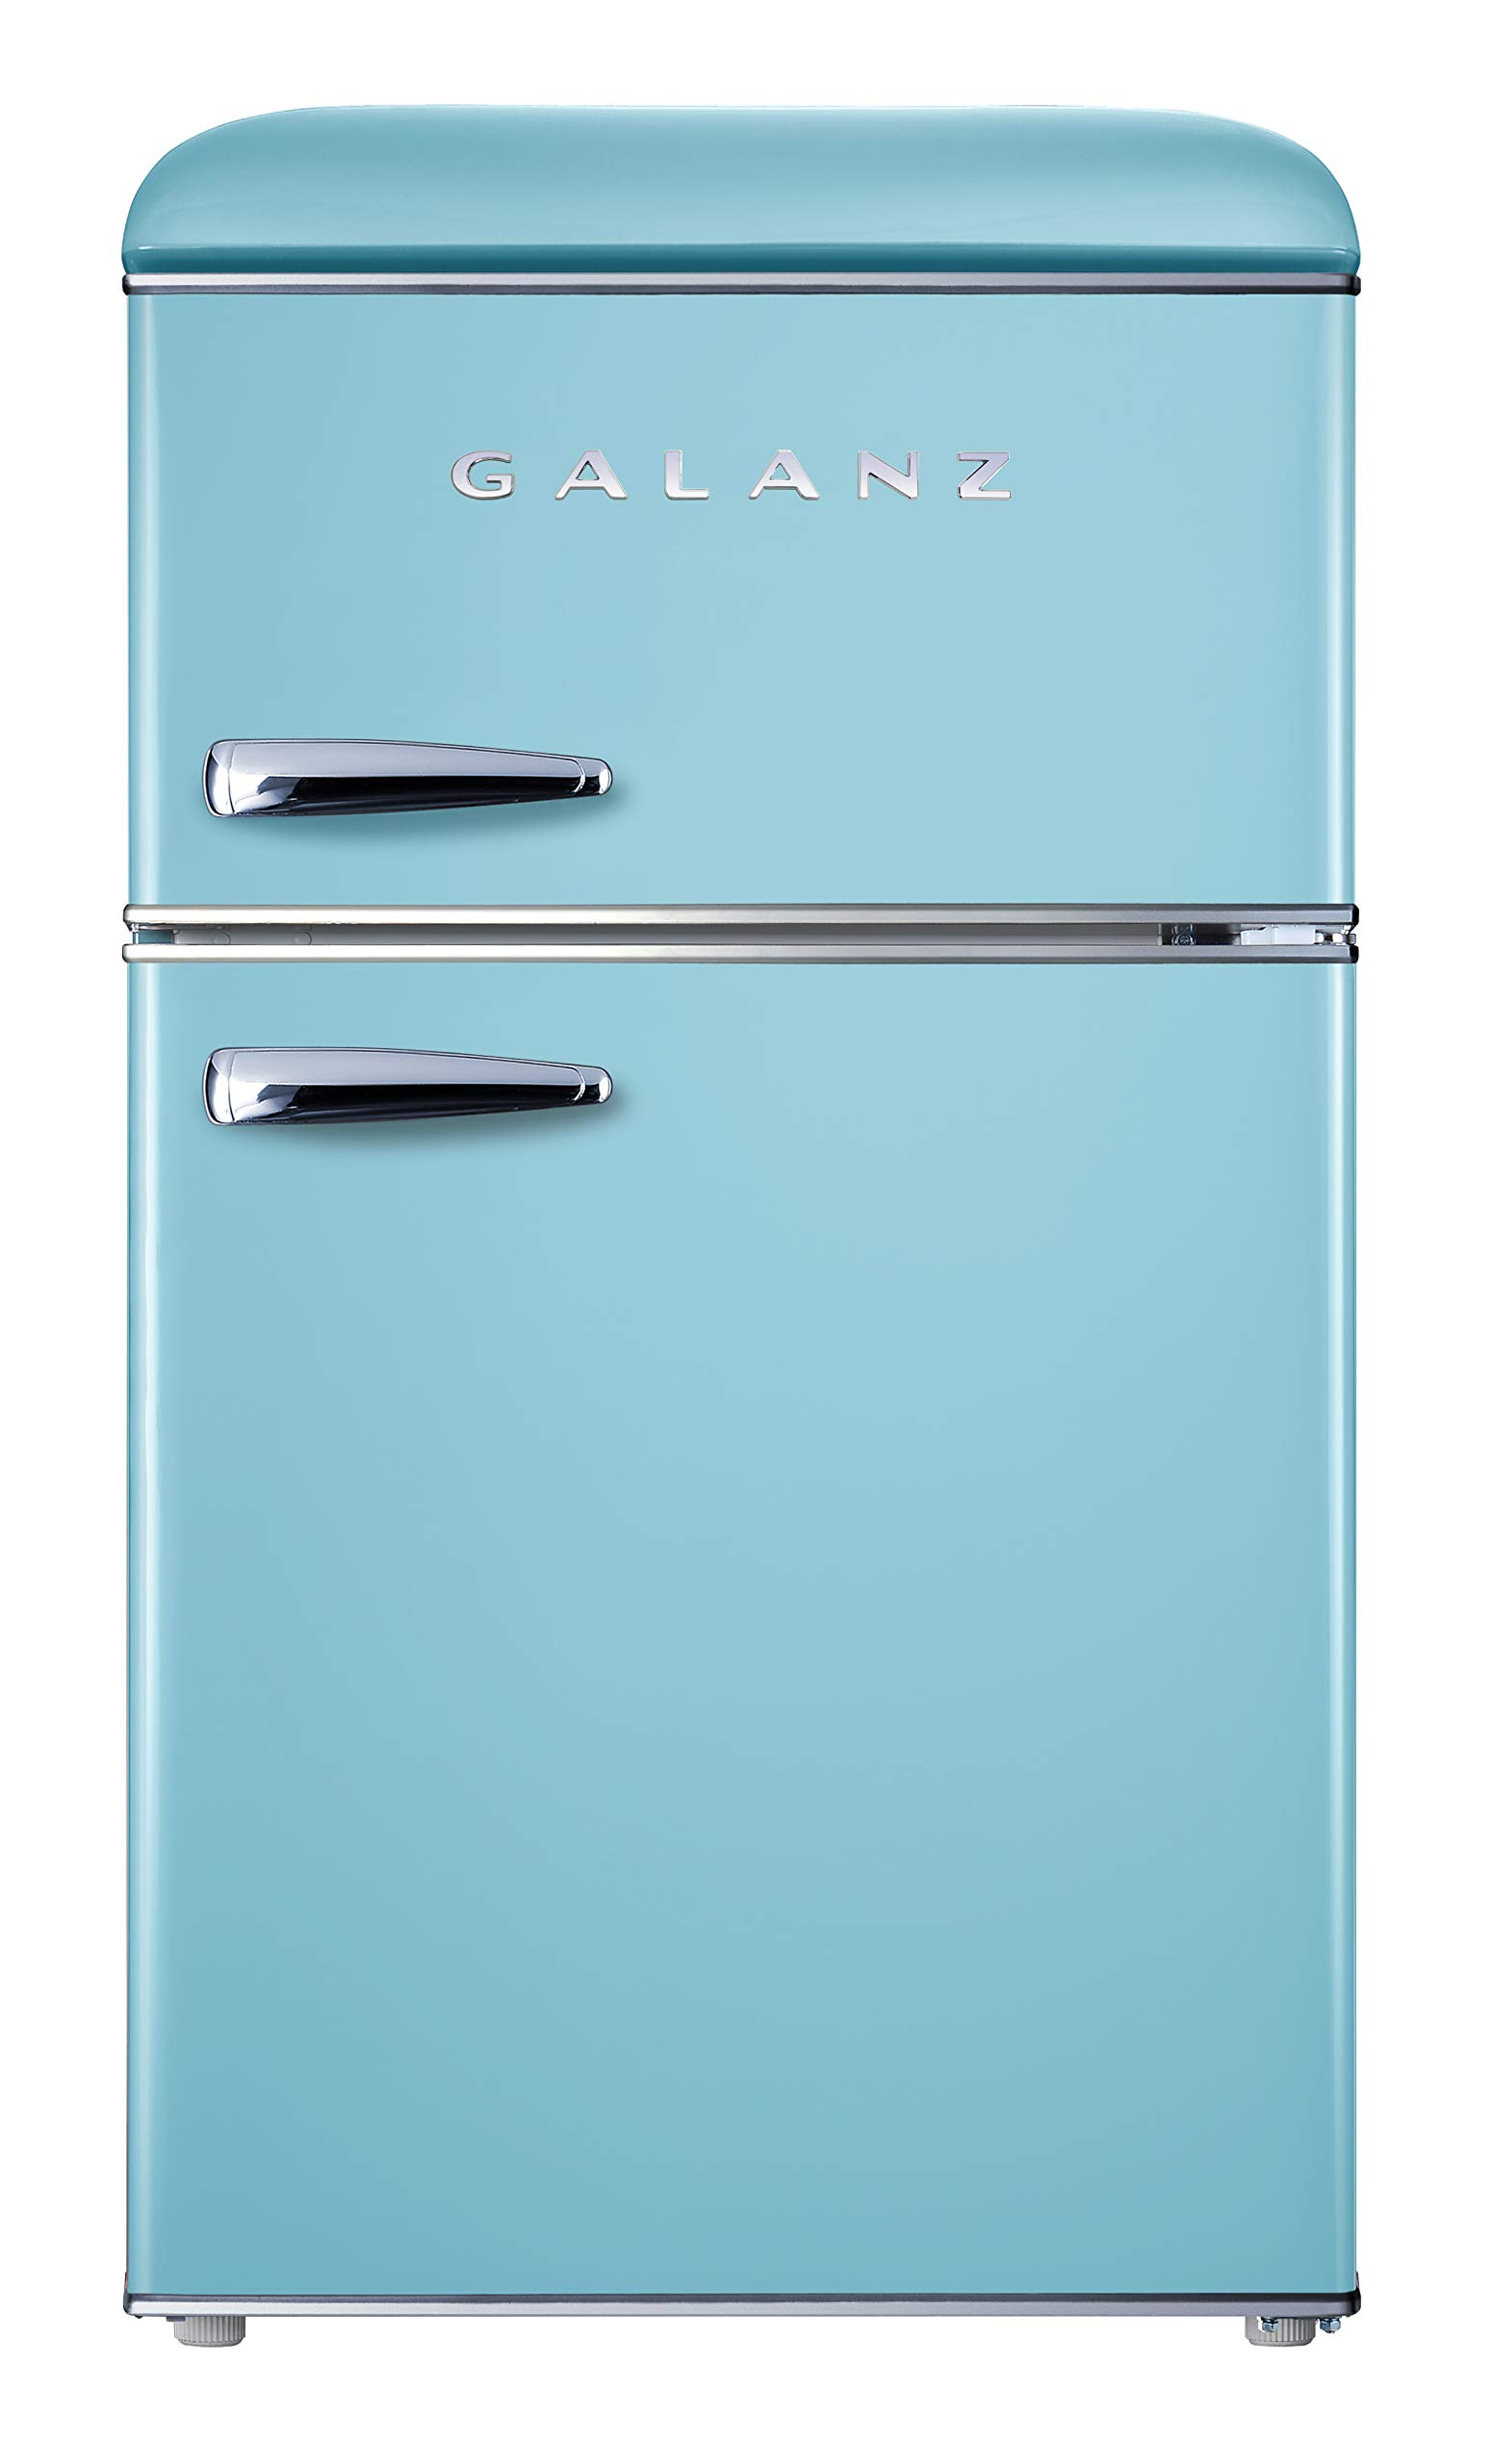 Galanz-Retro-Refrigerator-31-Cu-Ft-Blue